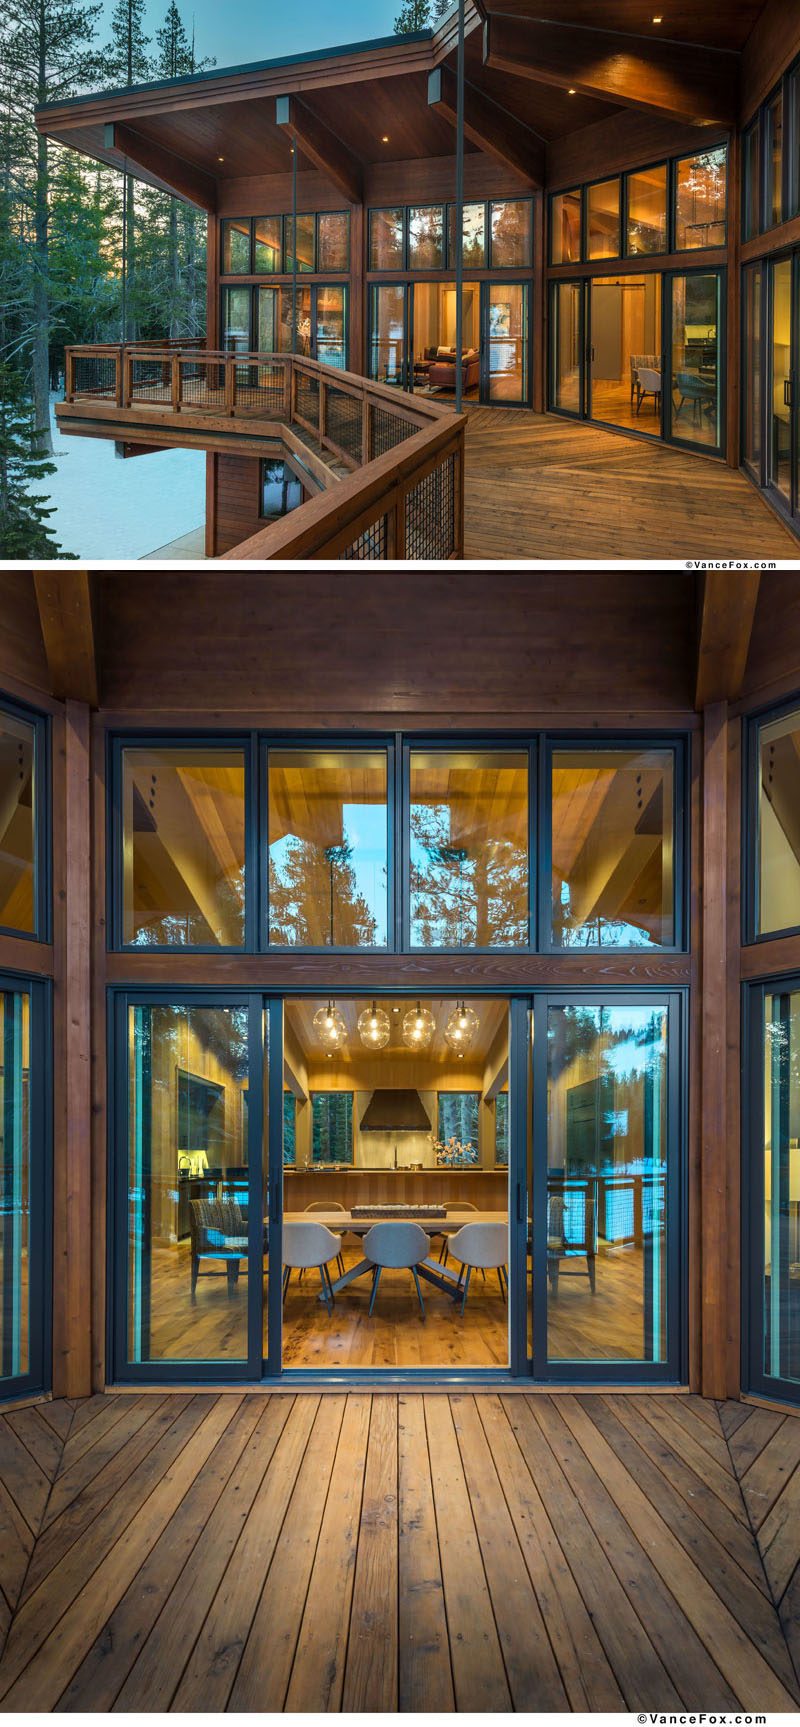 This modern mountain house has an outdoor deck running the length of the living and dining areas. #Balcony #MountainHome #Deck